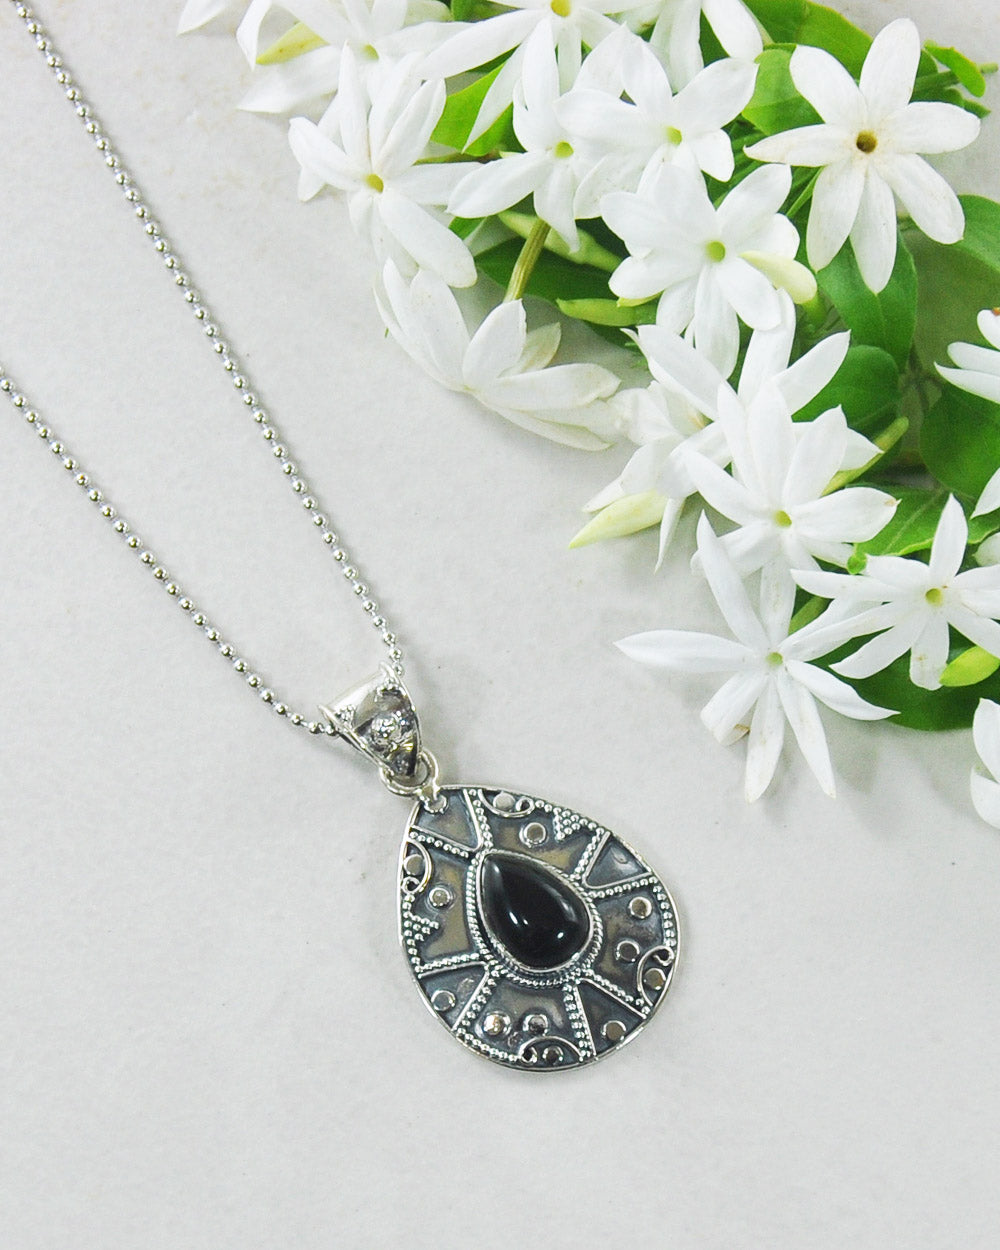 Desert Muse Sterling Silver Pendant Necklace - Black Onyx